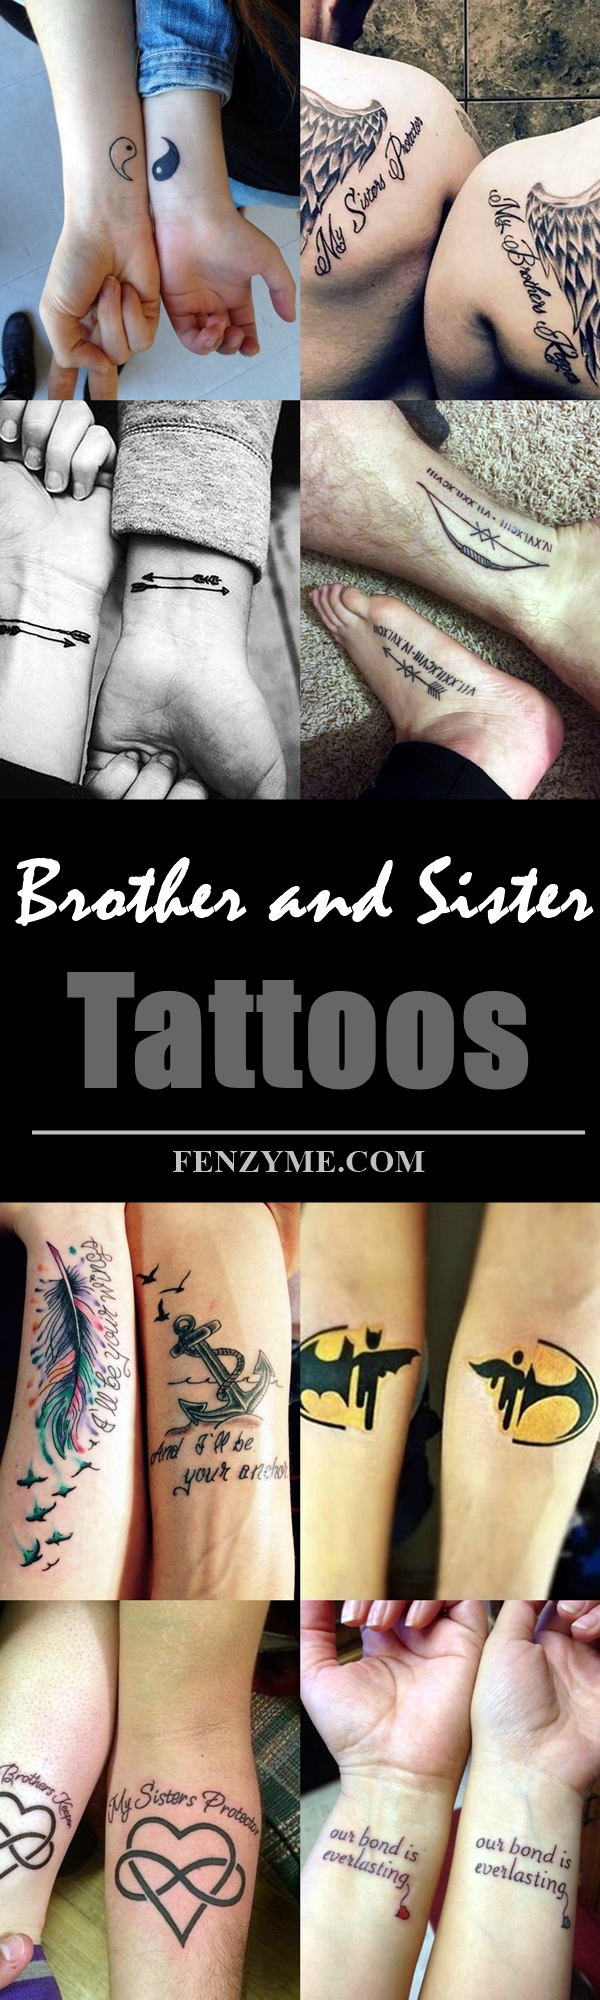 brother-and-sister-tattoos-3-tile